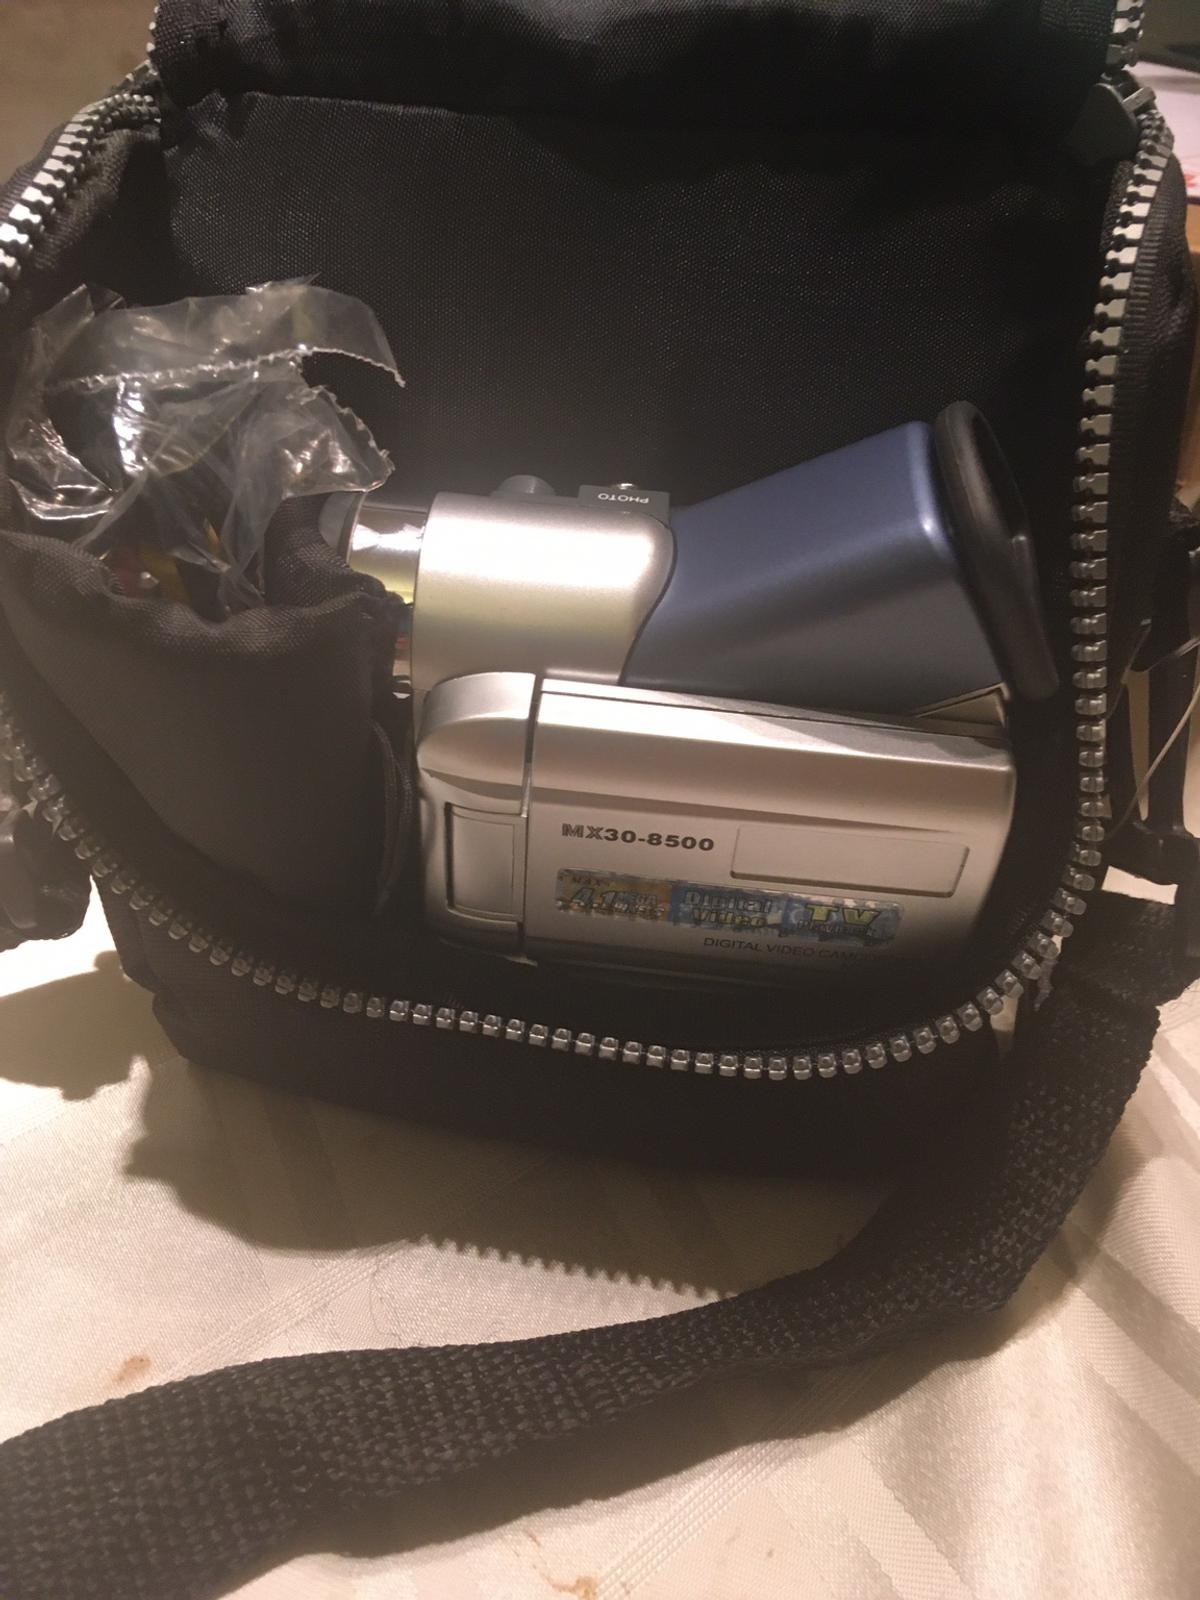 Lovely little camcorder with all accessories and 1 GB memory card included. Comes in a handy bag. Perfect for recording all occasions and taking pictures. Any questions please feel free to ask.